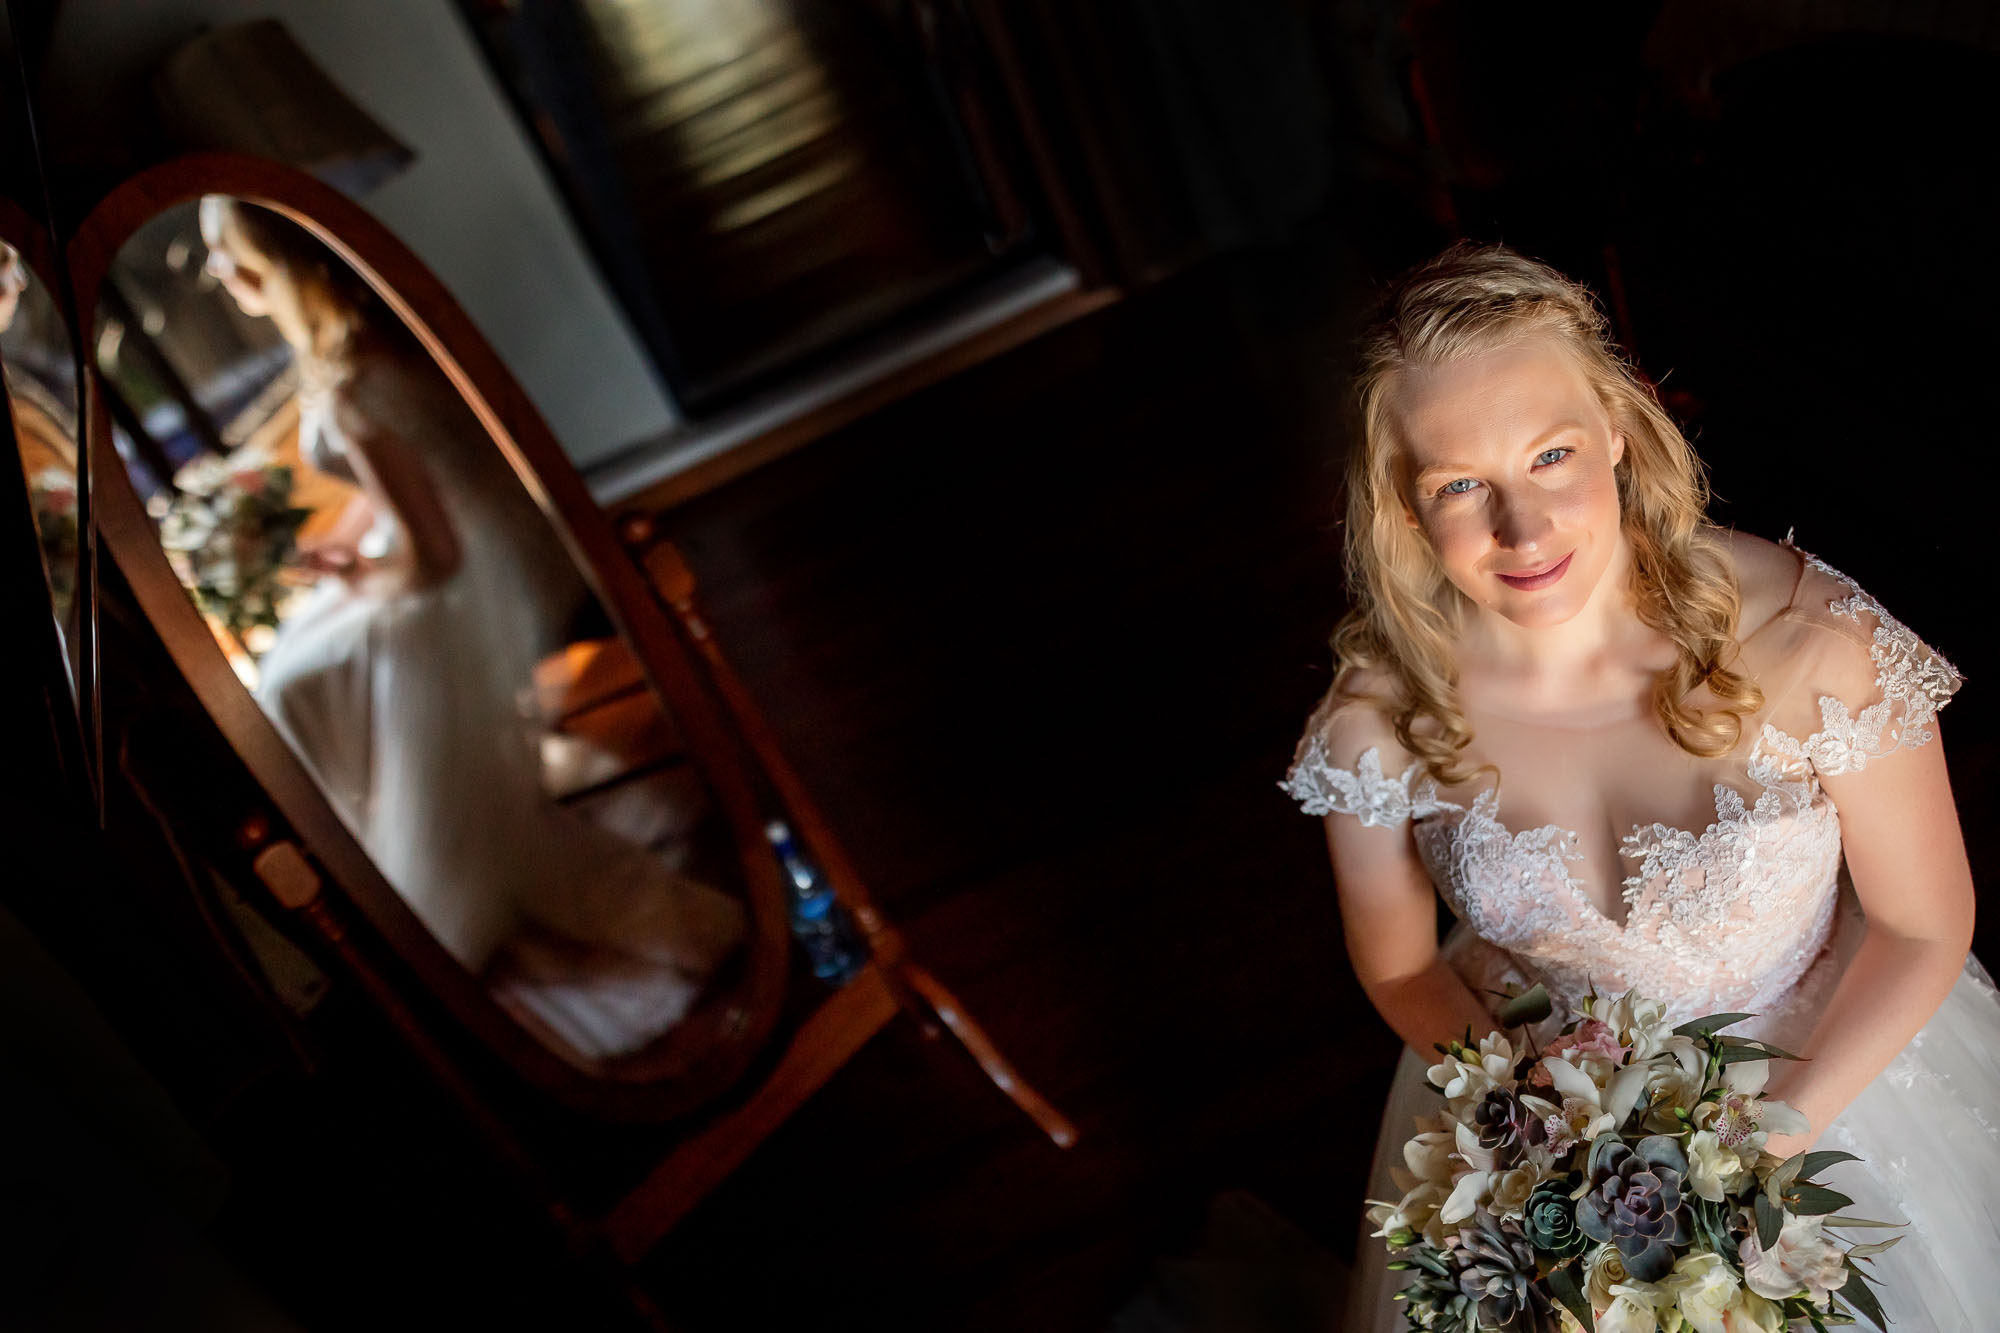 Creative wedding shot from above with the bride reflected in the mirror behind her